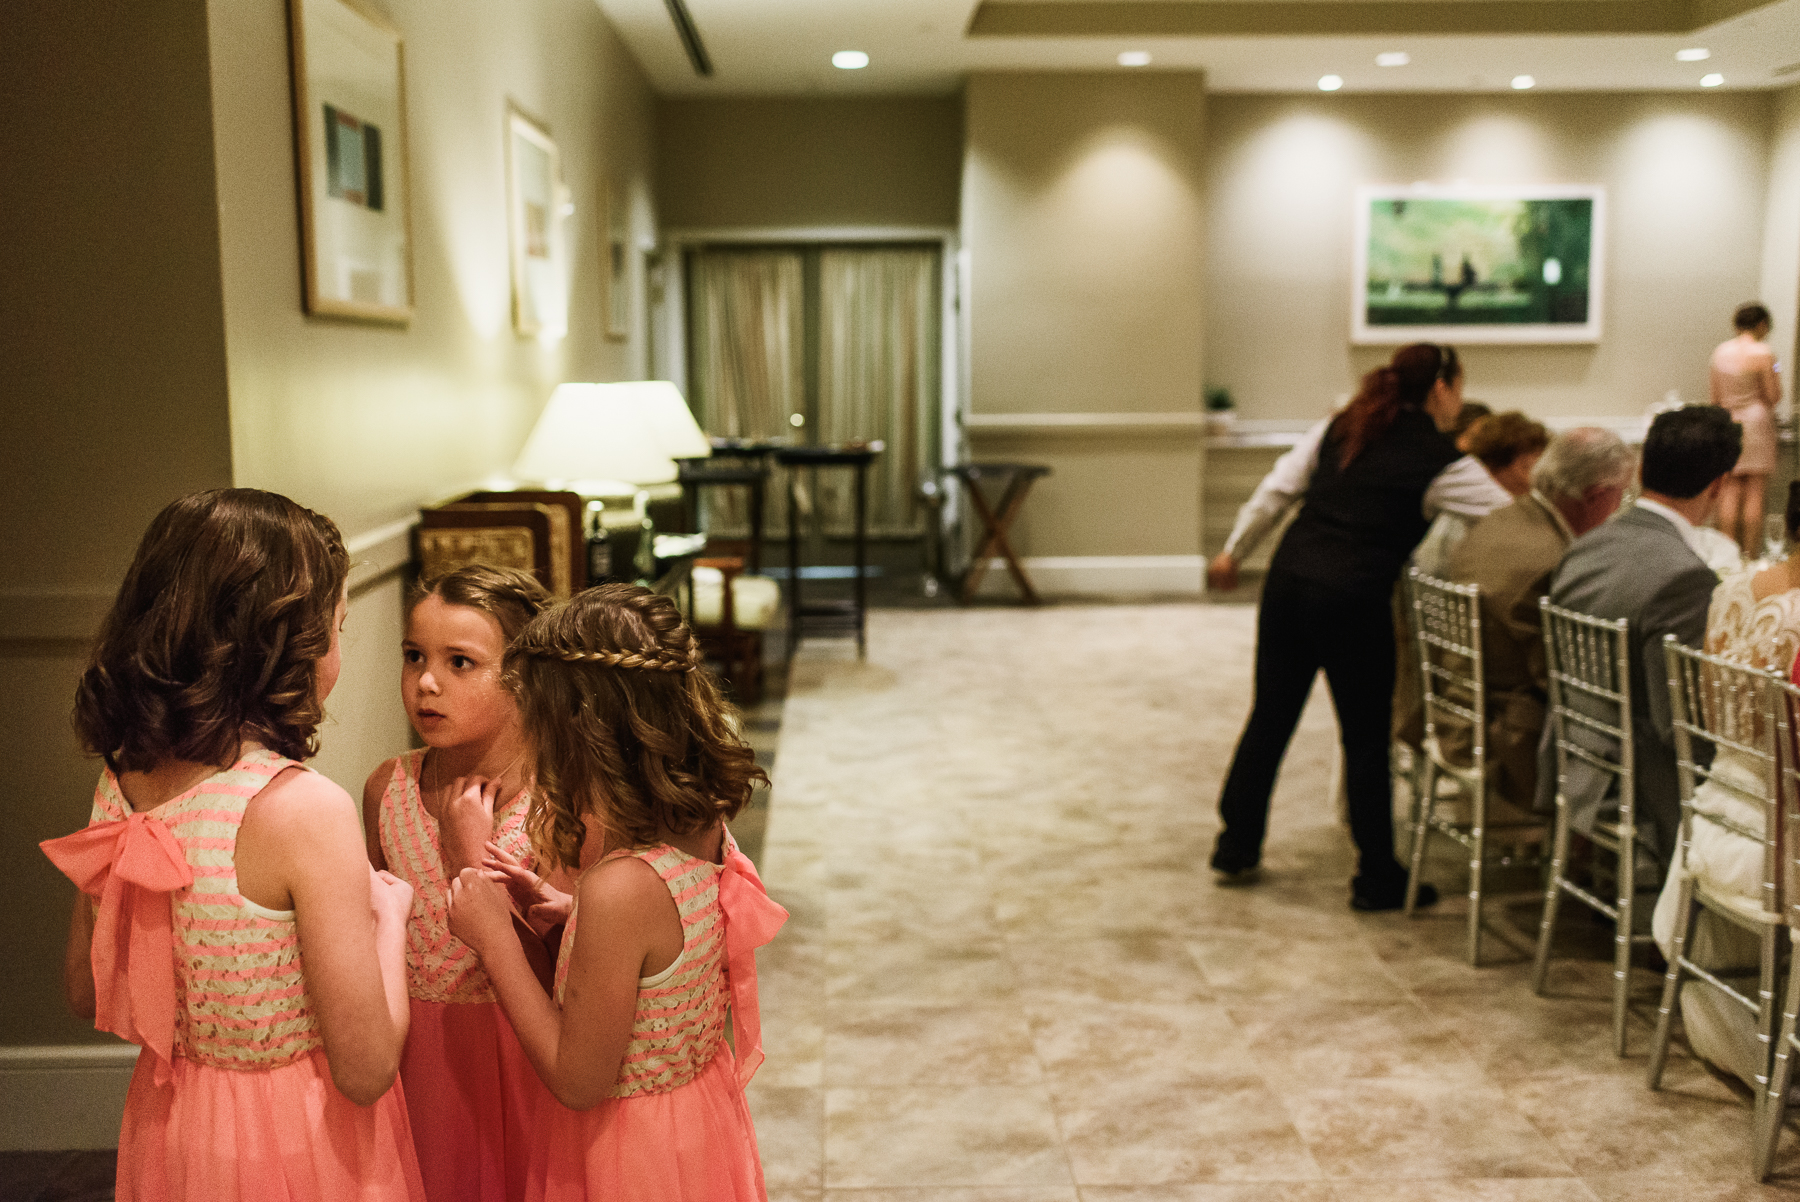 sanibel-florida-marriott-resort-destination-wedding-101